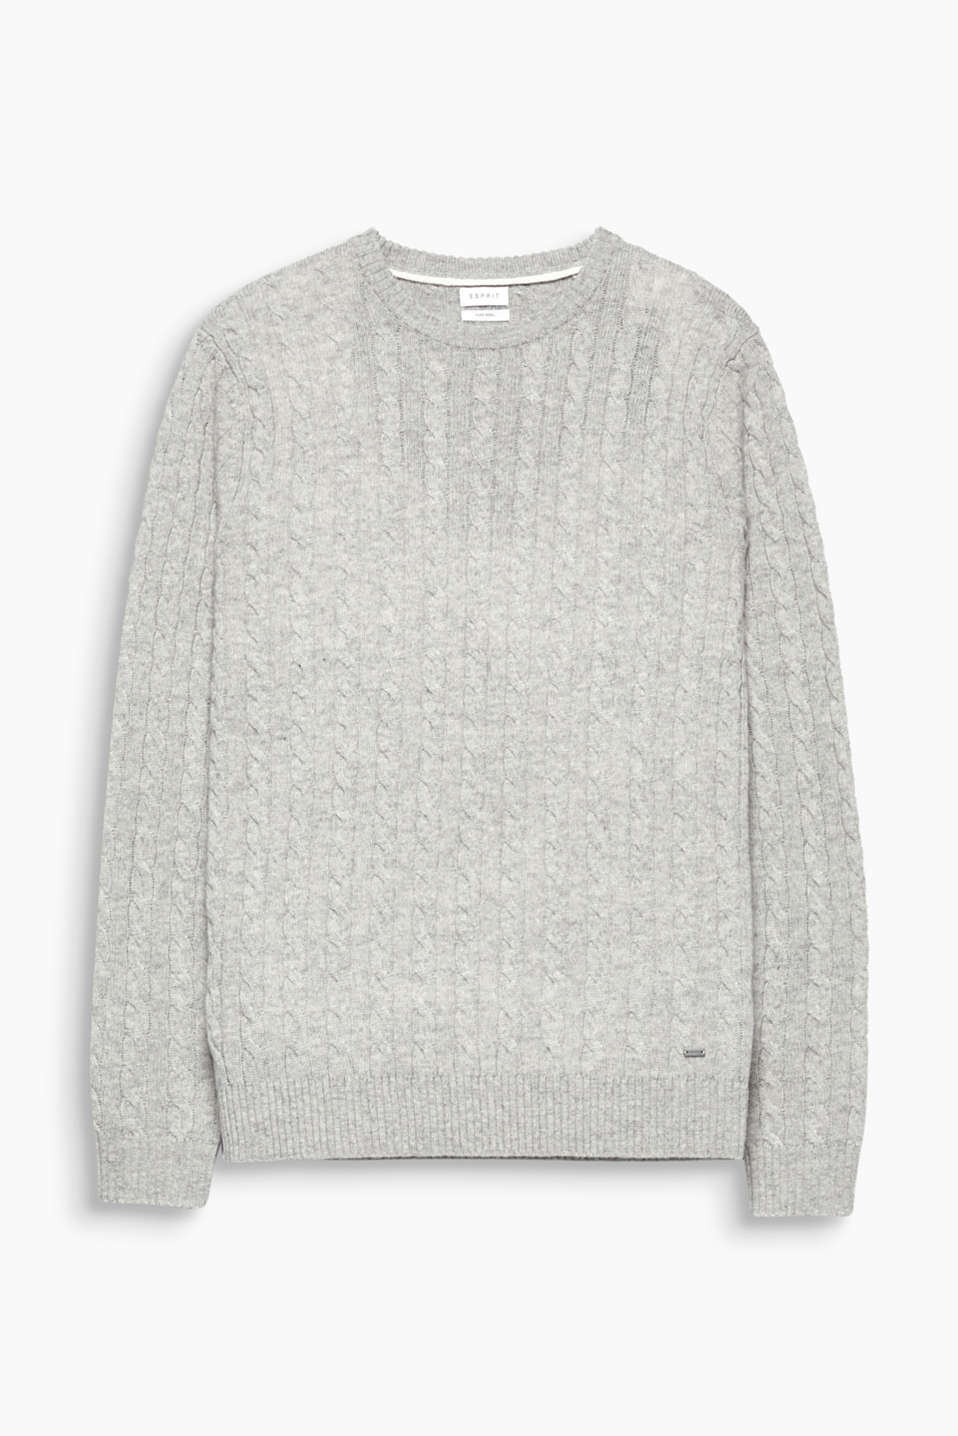 High-quality wool and the classic cable pattern make this jumper a timeless fashion piece.